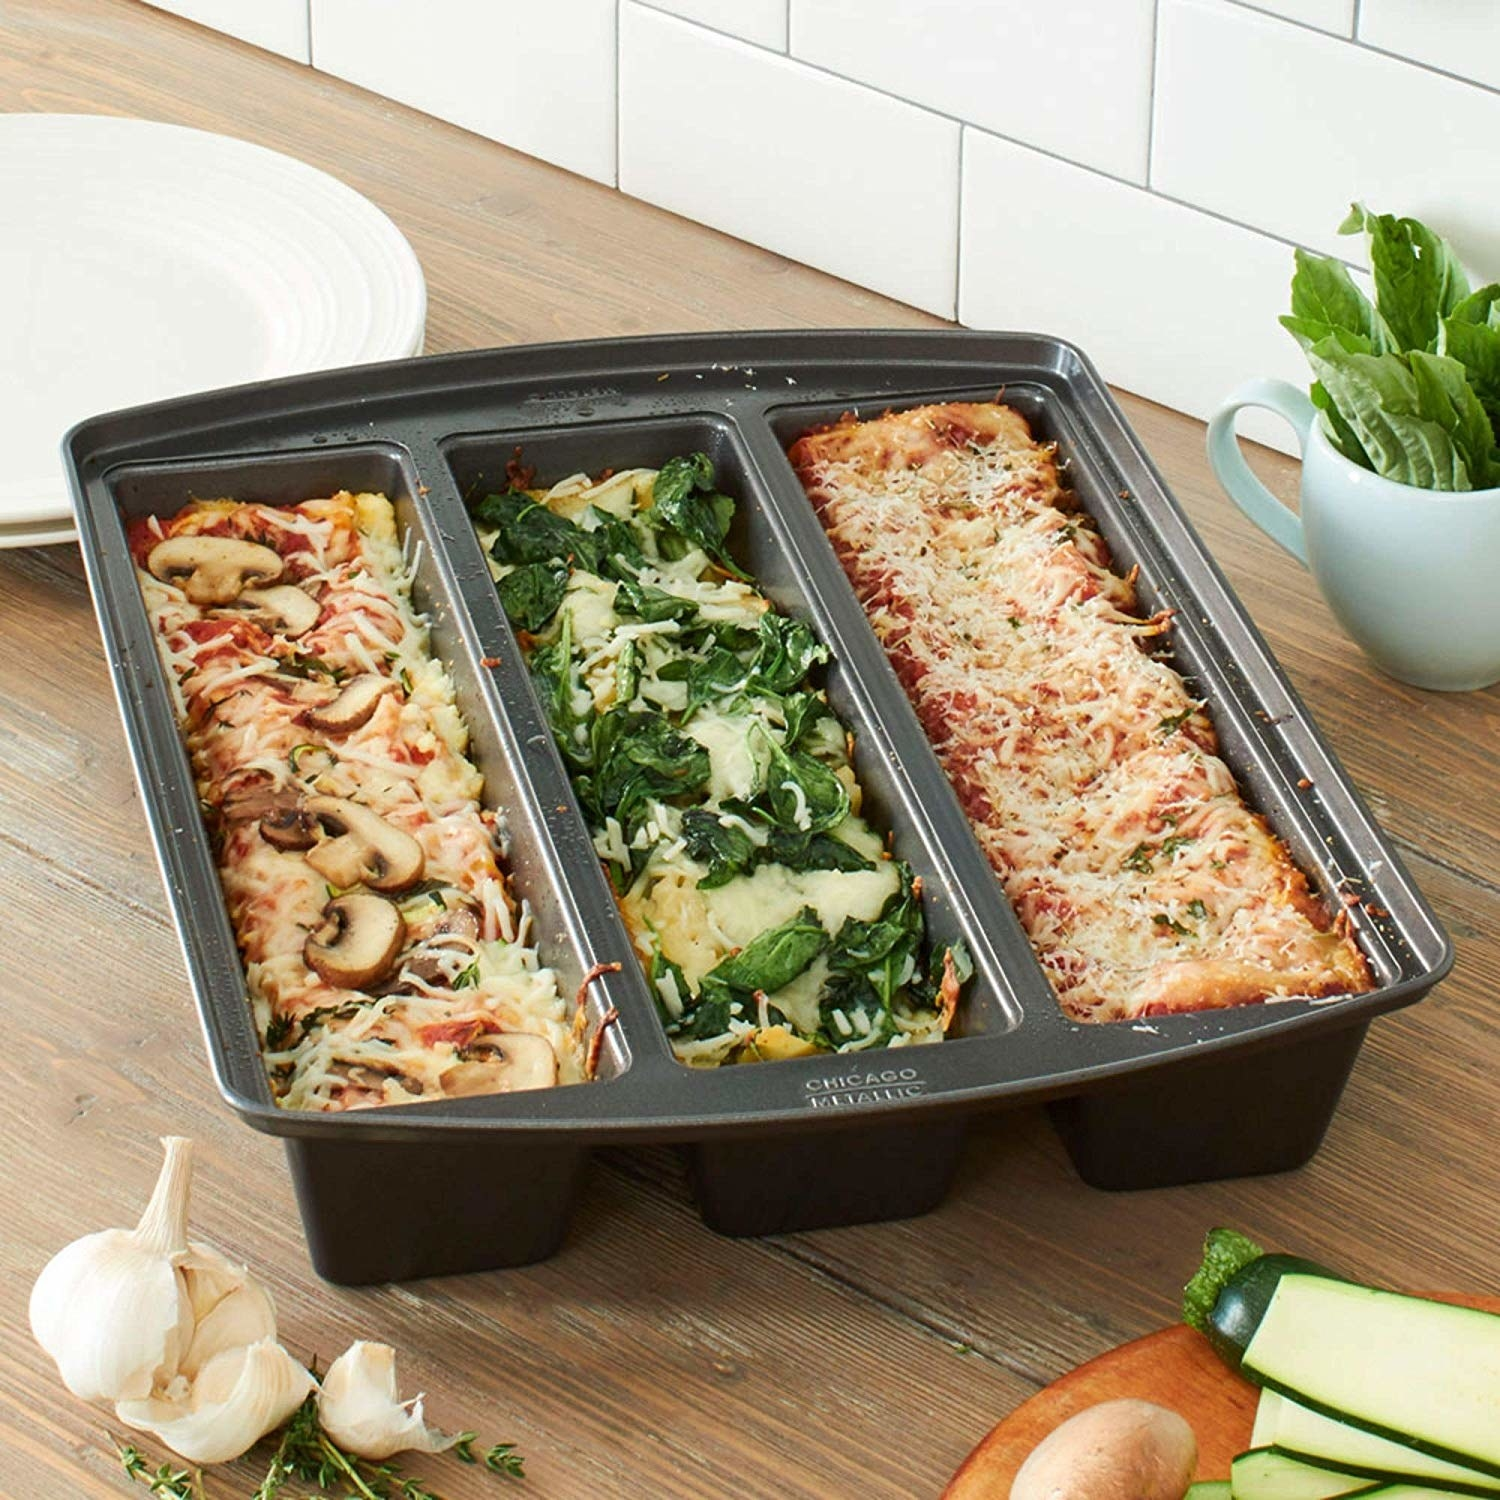 A stainless steel baking pan with three sections that have lasagna in them